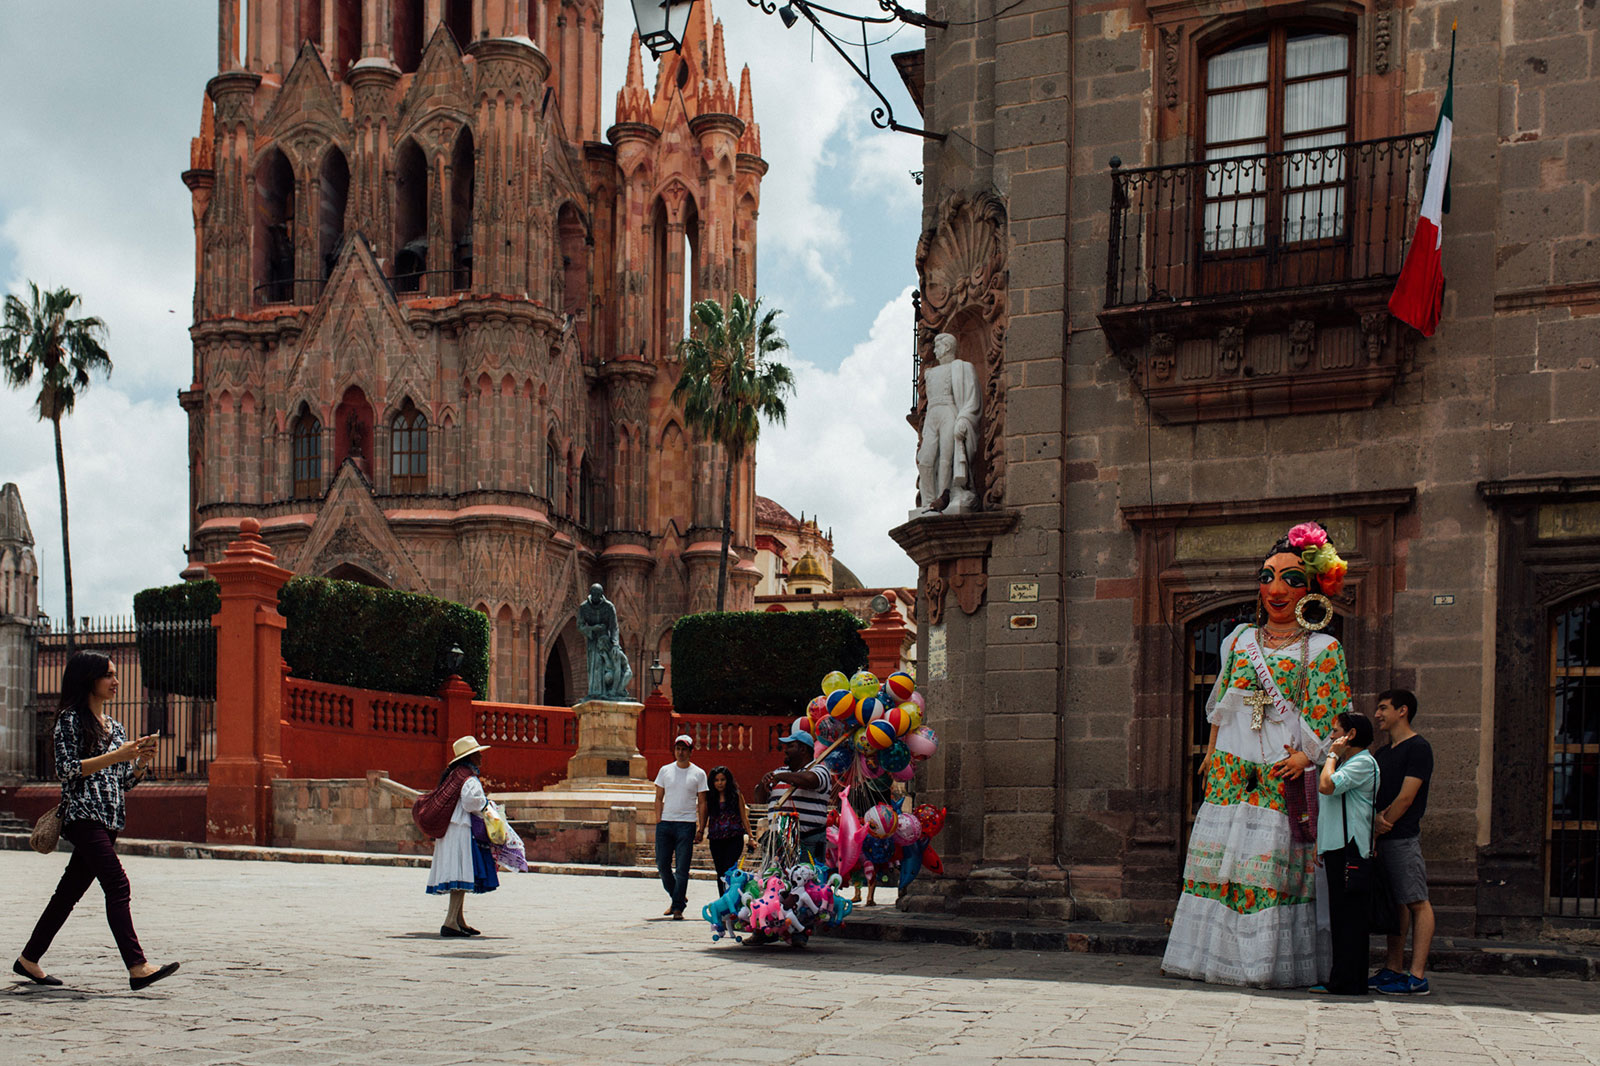 Hammocks_and_Ruins_Mayan_Mythology_What_to_Do_Mexico_Maya_San Miguel de Allende_25.jpg